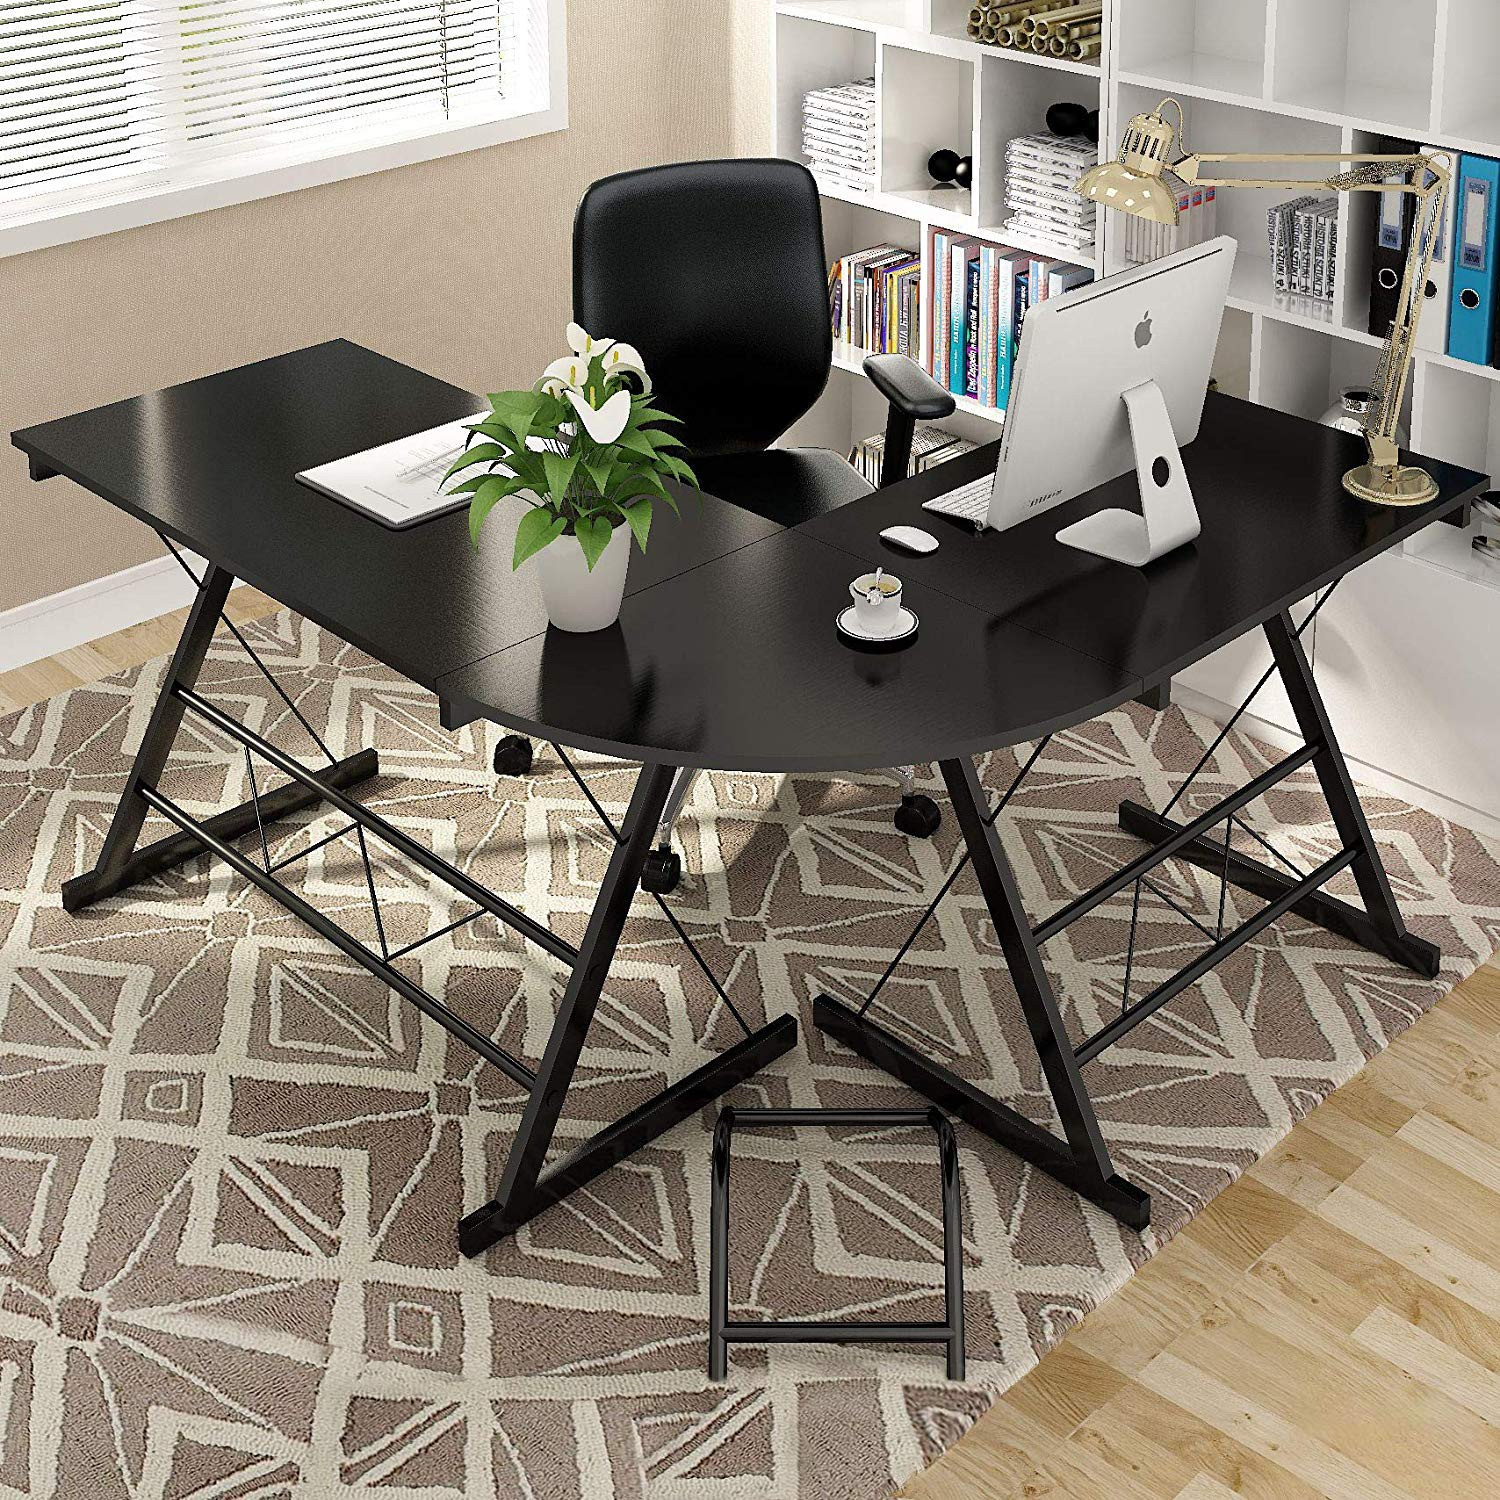 NsDirect L Shaped Computer Desk - Office Desk - Workstation Desk - PC Laptop Table - 3-Piece Corner Table - Home Office and Professional Use - CPU Stand Included